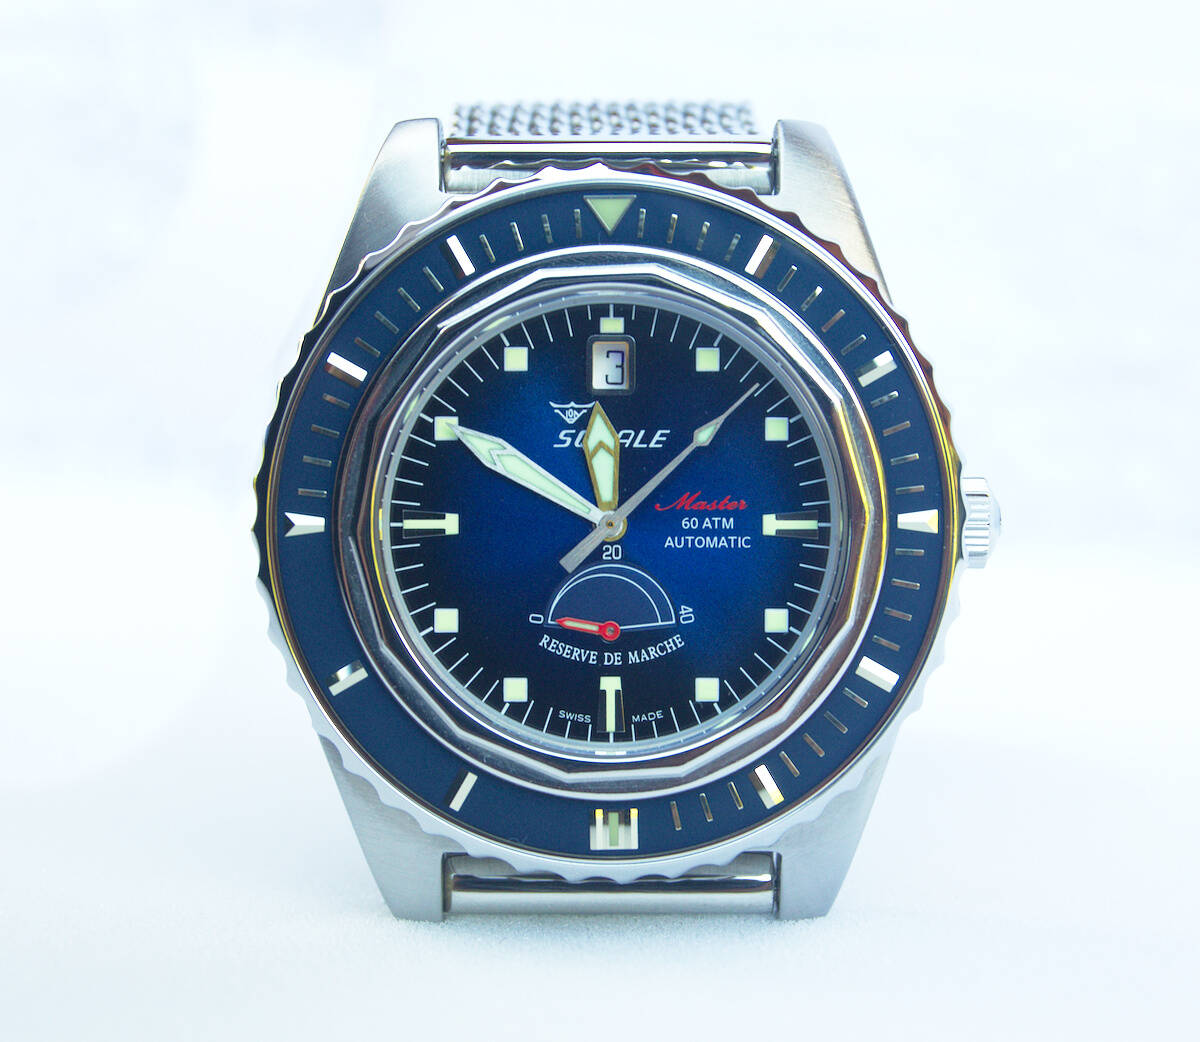 Squale Master Professional - Blue Dive Watch